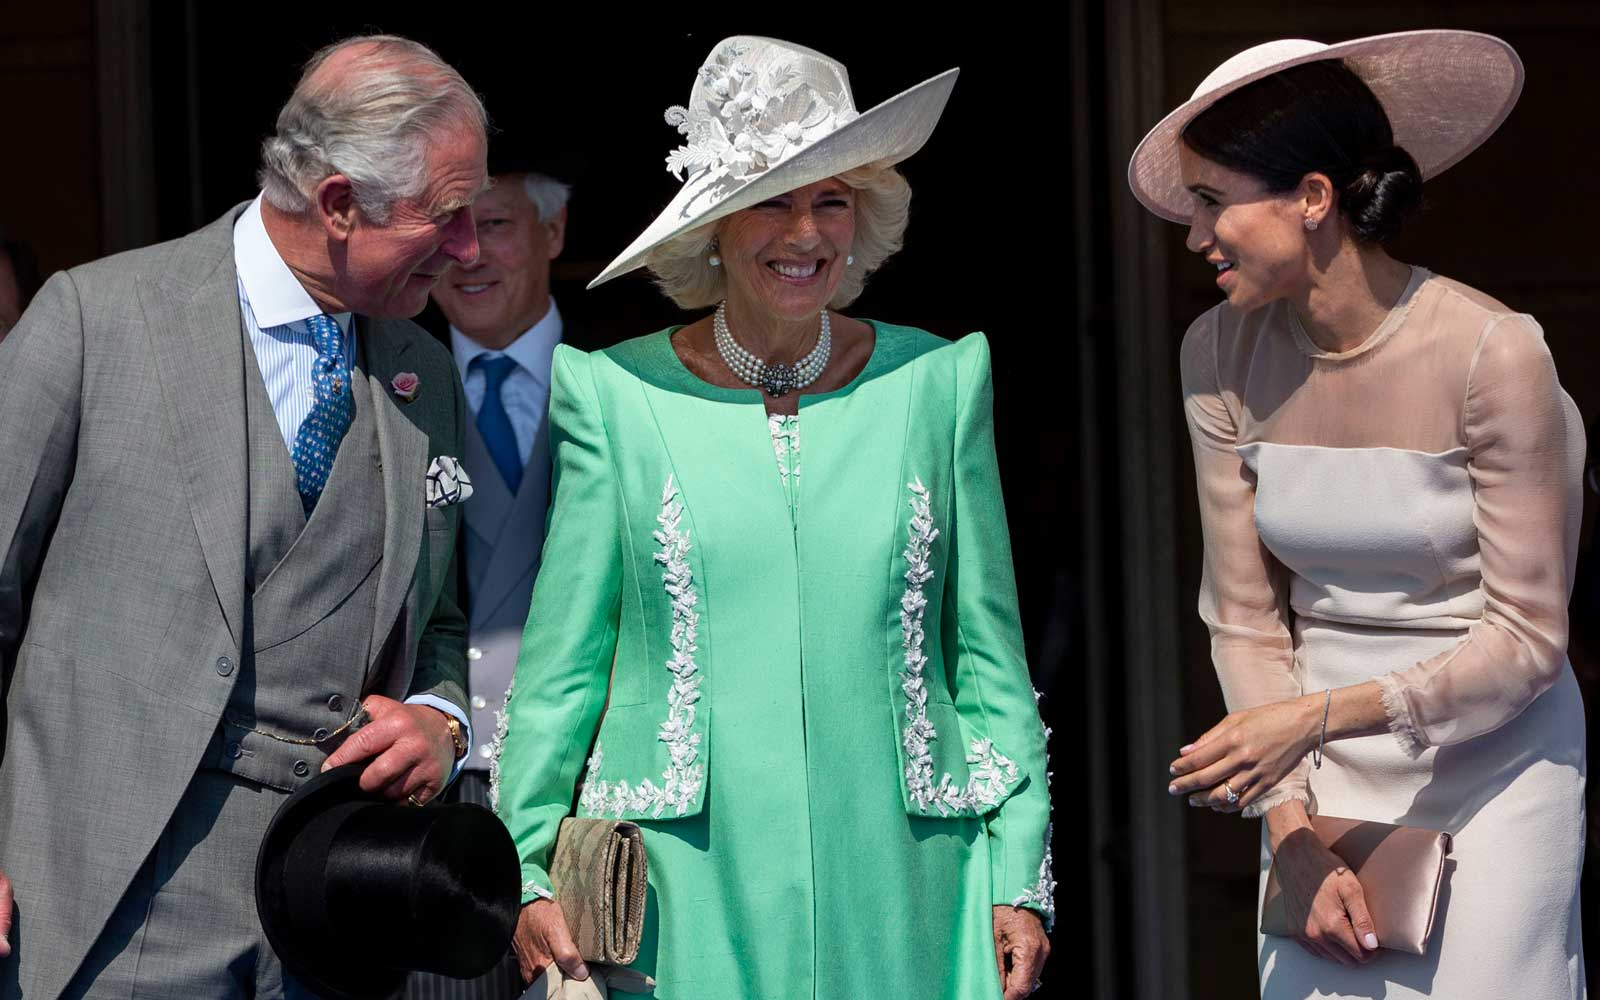 Prince Charles, Prince of Wales and Camilla, Duchess of Cornwall with Meghan, Duchess of Sussex